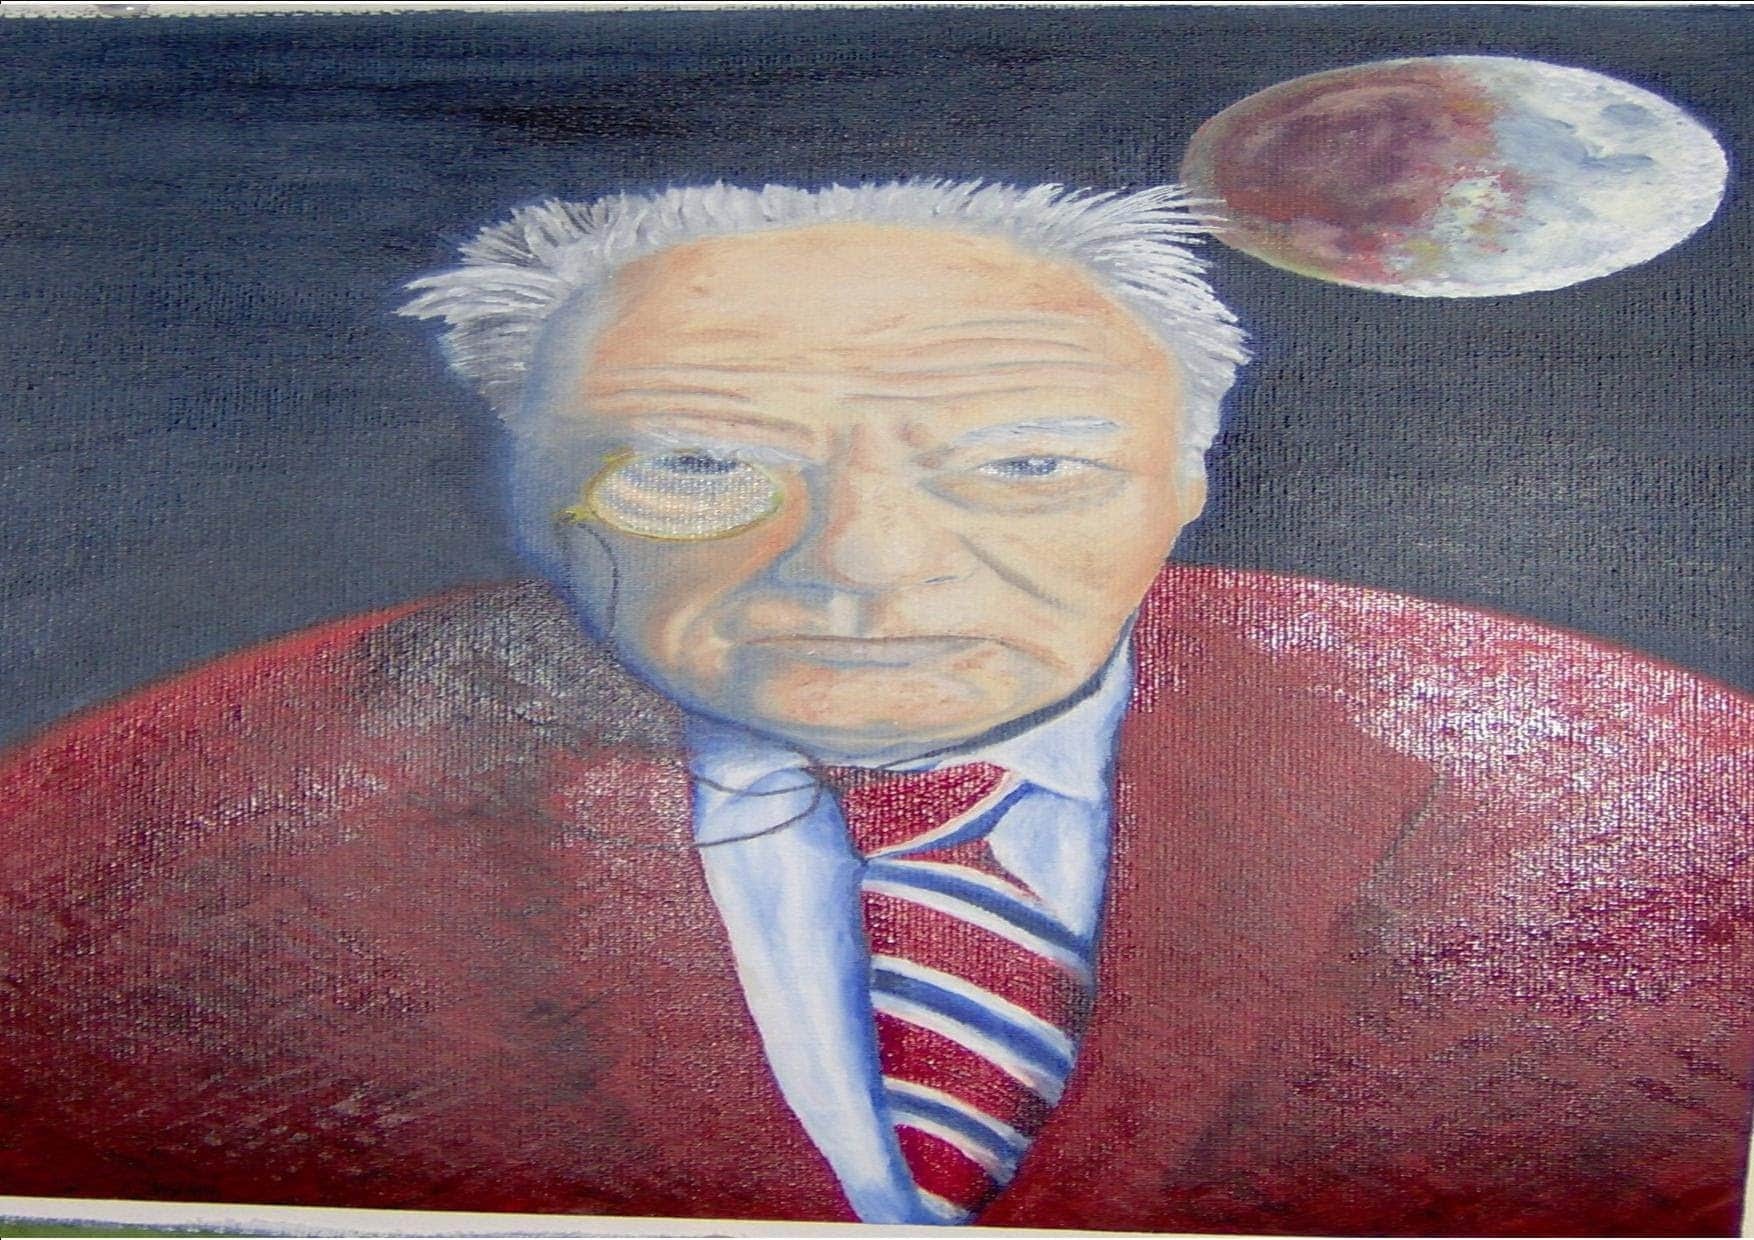 Tribute to Sir Patrick Moore who died today. 6